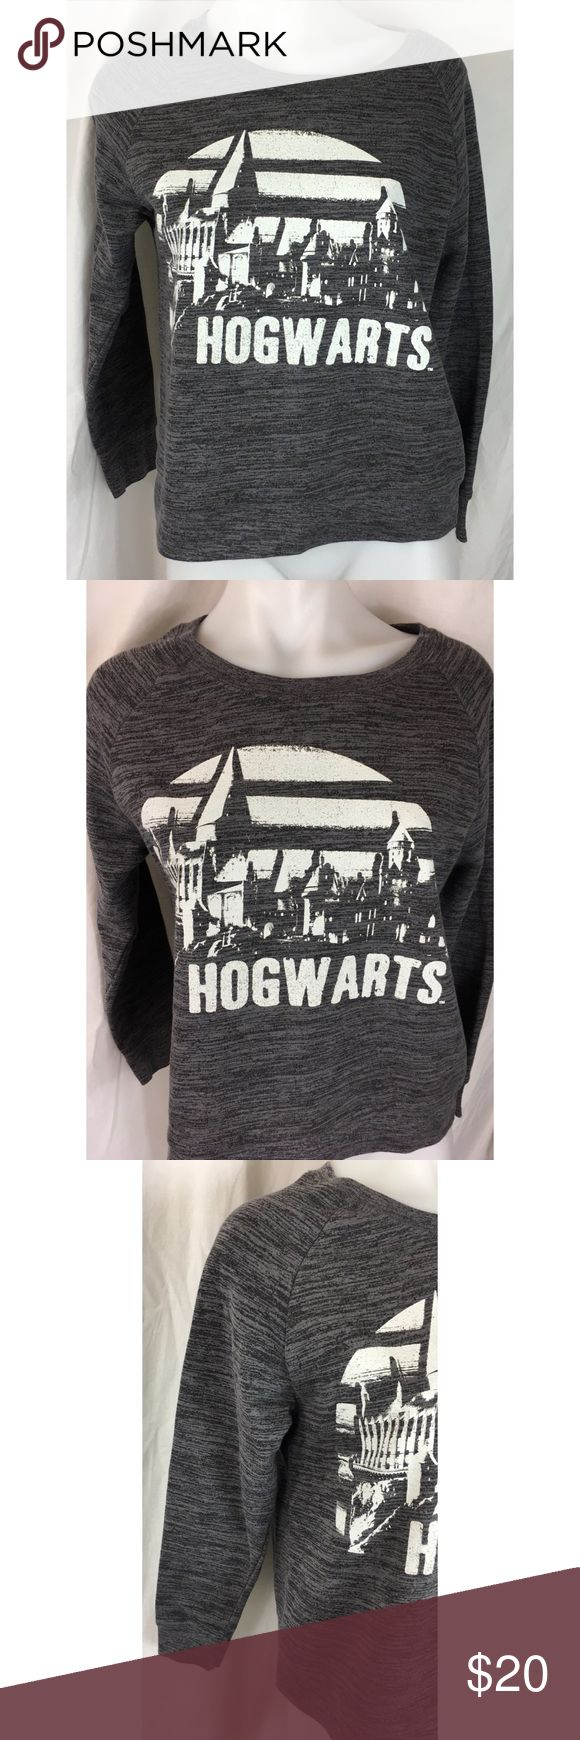 Harry Potter gray Hogwarts sweatshirt 5011 Harry Potter gray Hogwarts sweatshirt Women's Size:  M Approx measurement: armpit to armpit - 18 1/4 inches; length - 22 inches Fabric content: 60% cotton, 40% polyester Machine washable Gently used - see pictures harry potter Tops Sweatshirts & Hoodies